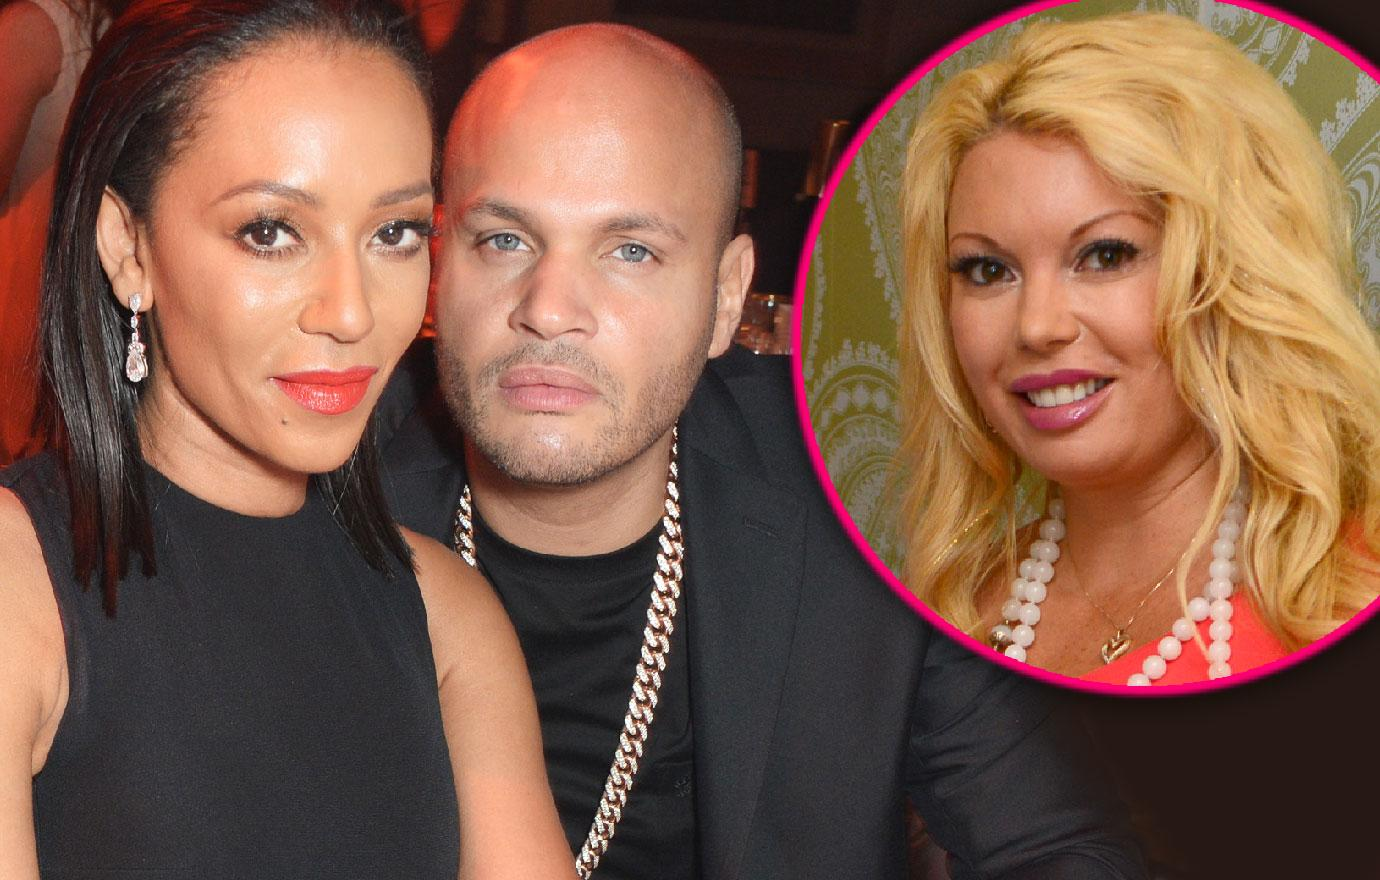 Playboy Model Claims Threesome With Mel B